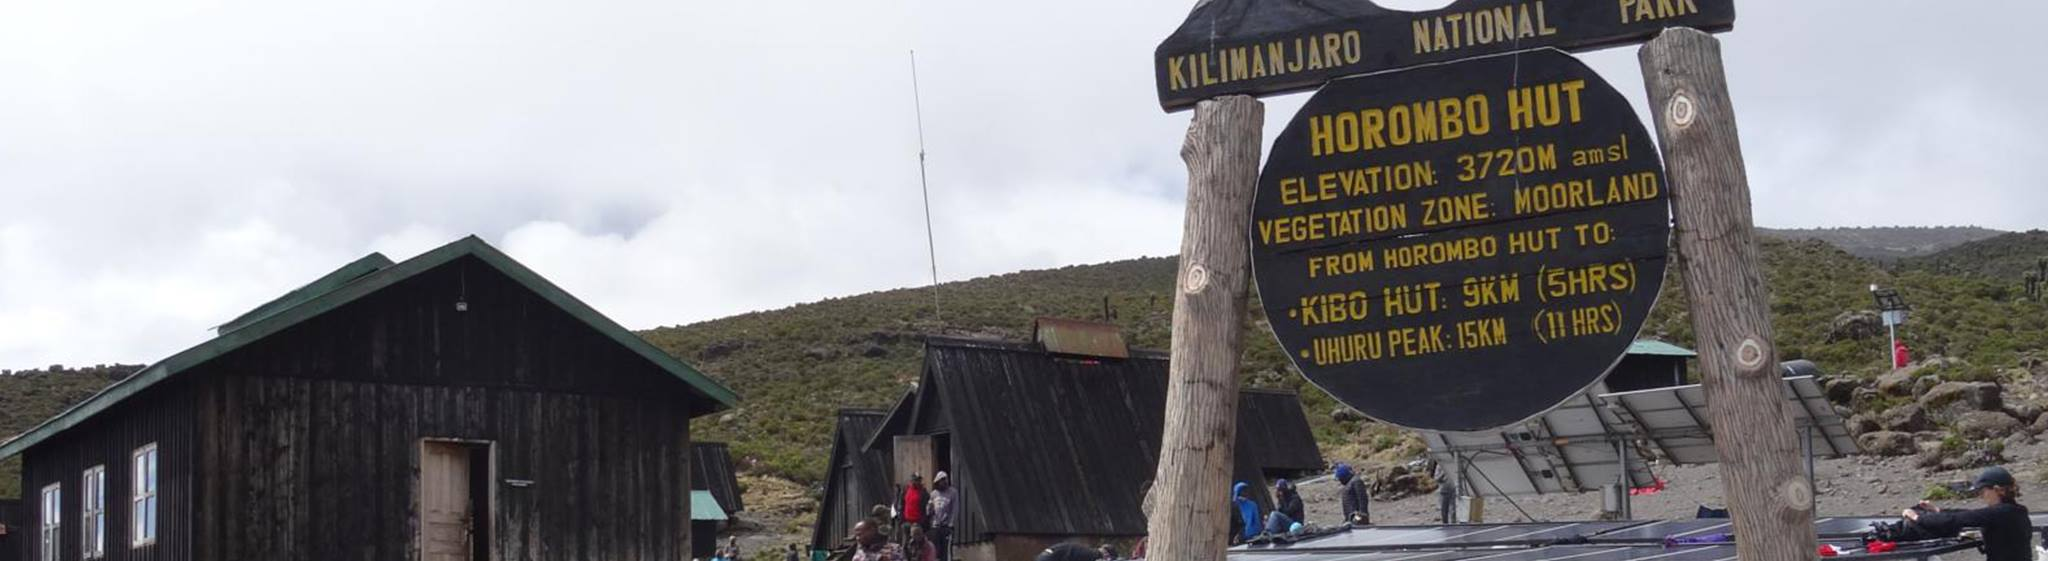 Kilimanjaro + Zanzibar via Marangu Route - Safanta Tours & Travel Company Limited